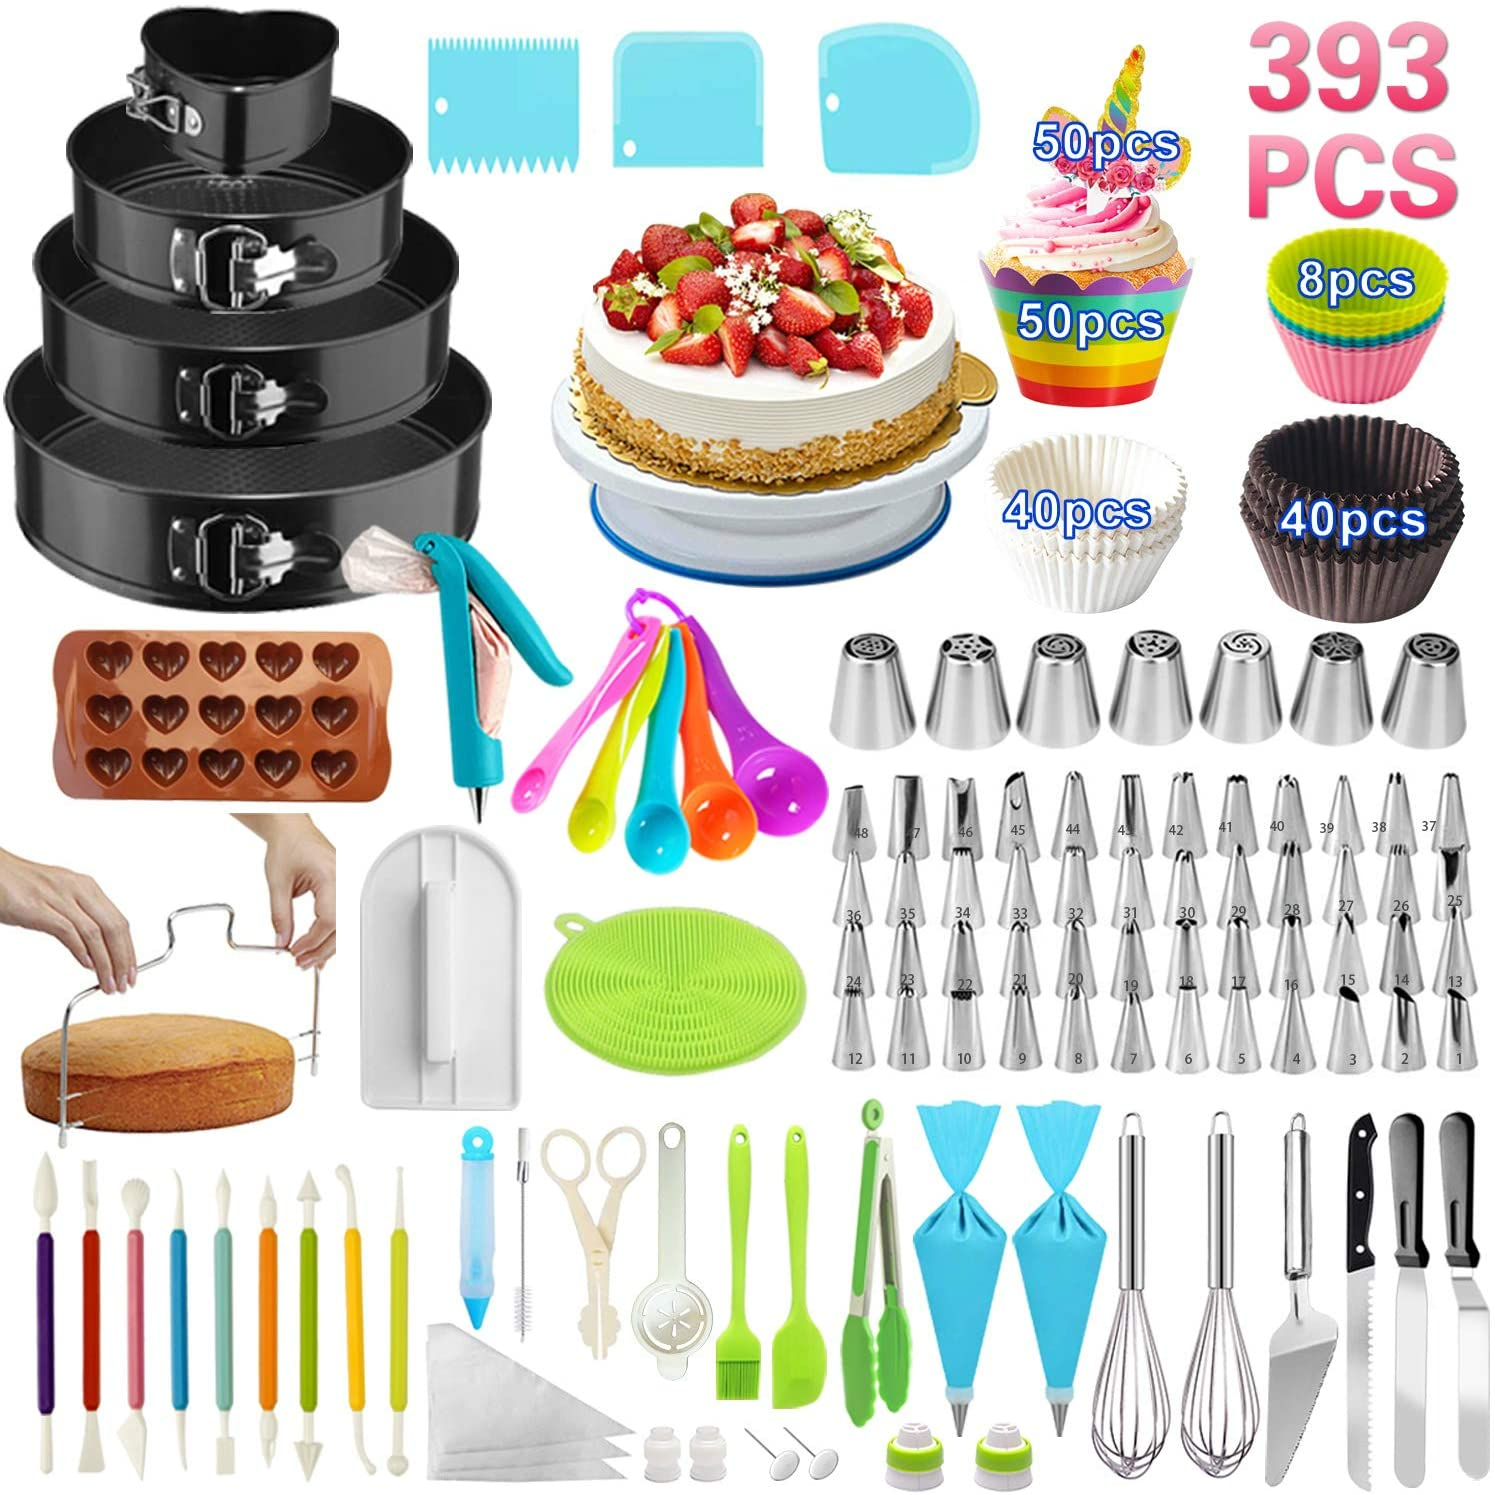 Cake Decorating set include Cupcake Rotating Turntable Stand Leveler Frosting Piping Bags Tips Set Baking Supplies Icing Spatula